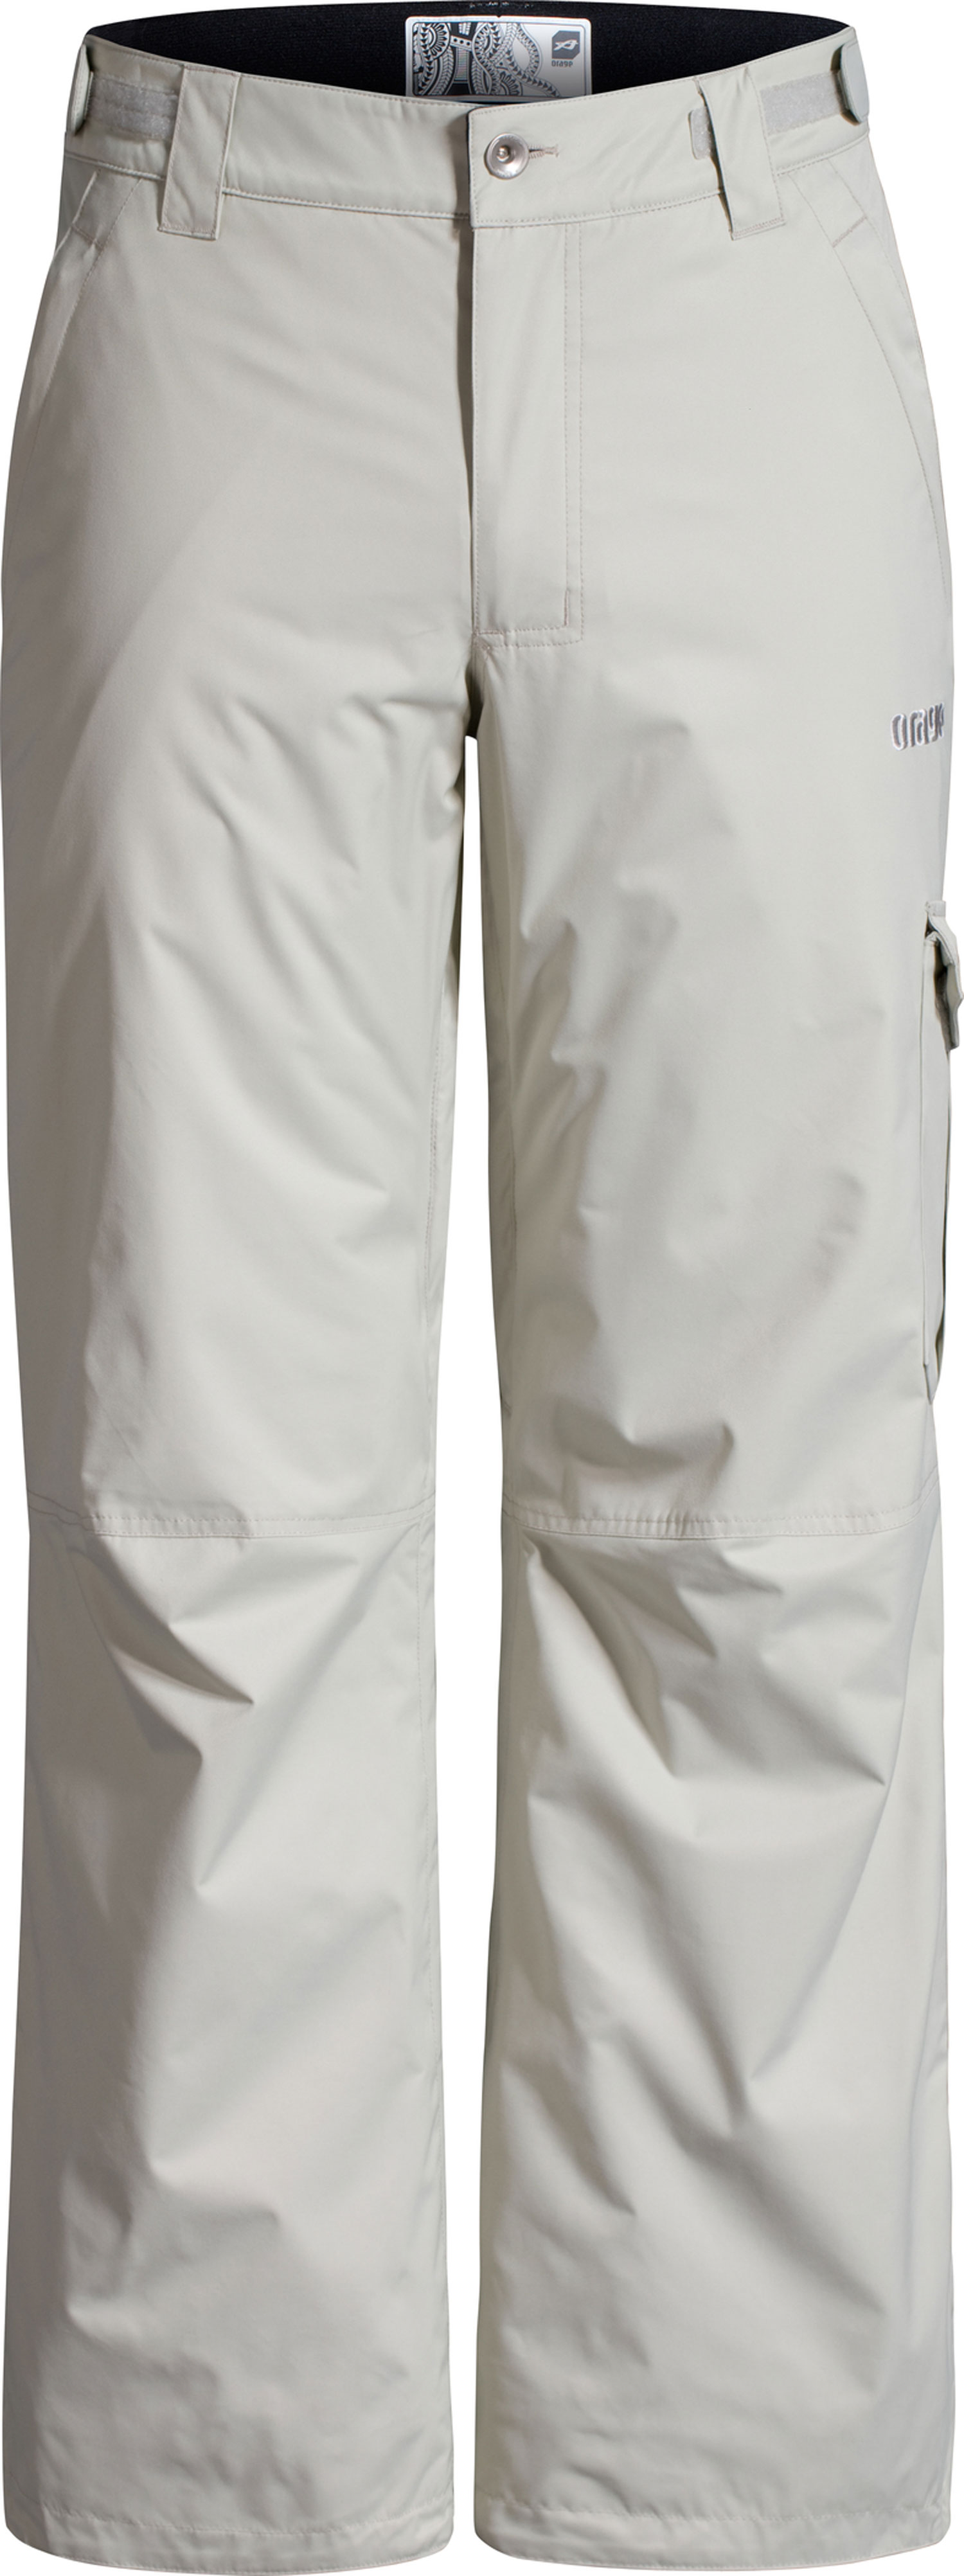 Ski Key Features of the Orage Benji 2 Ski Pants: Prime 10: Nylon twill 2 ply 100% Nylon, ECO DWR 80/10, 160g/m2 Strategically seam sealed Vents Adjustable waist band Lower leg opening with reinforcement Snow gaiters with elastic grip - $125.95